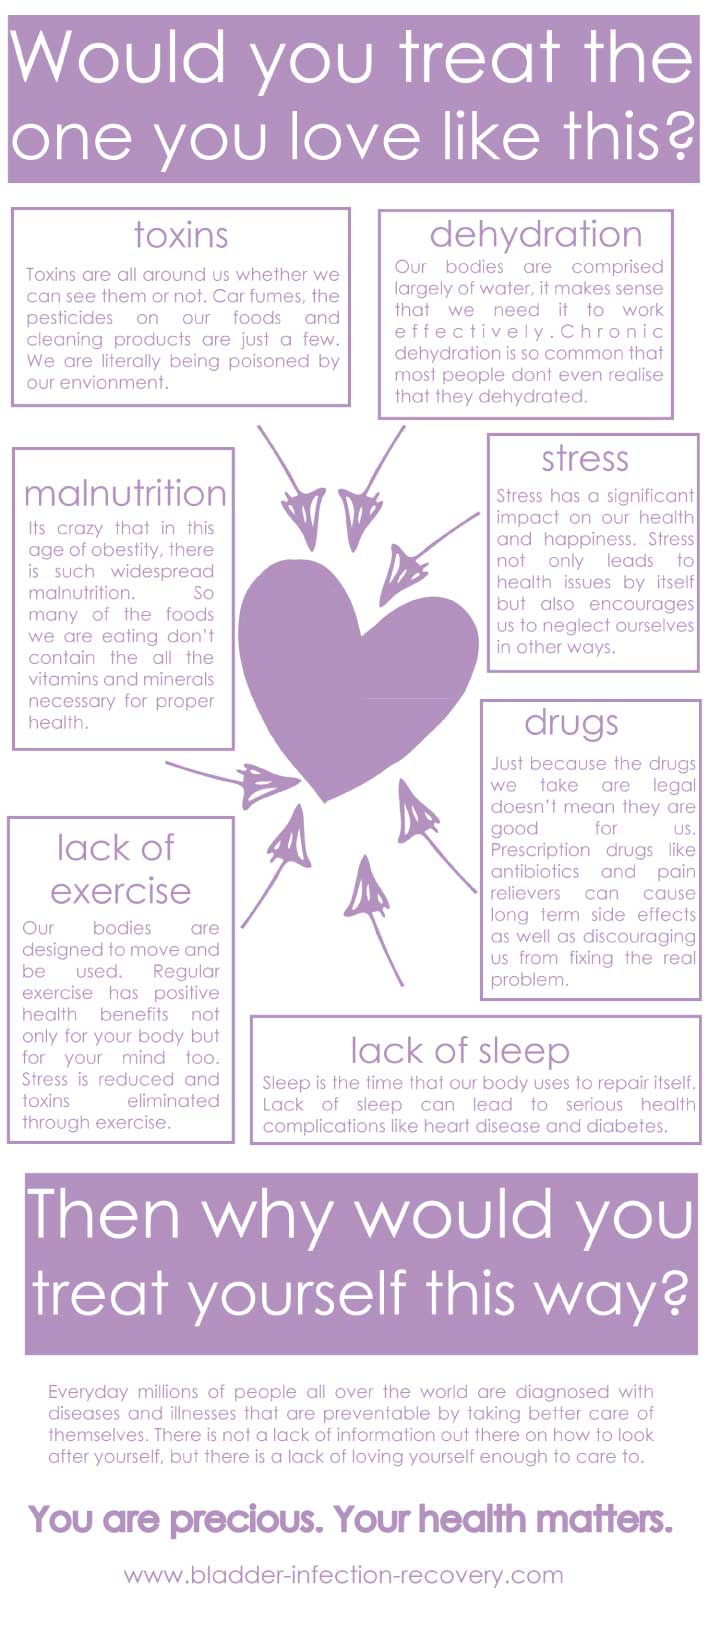 Infographic on general wellness